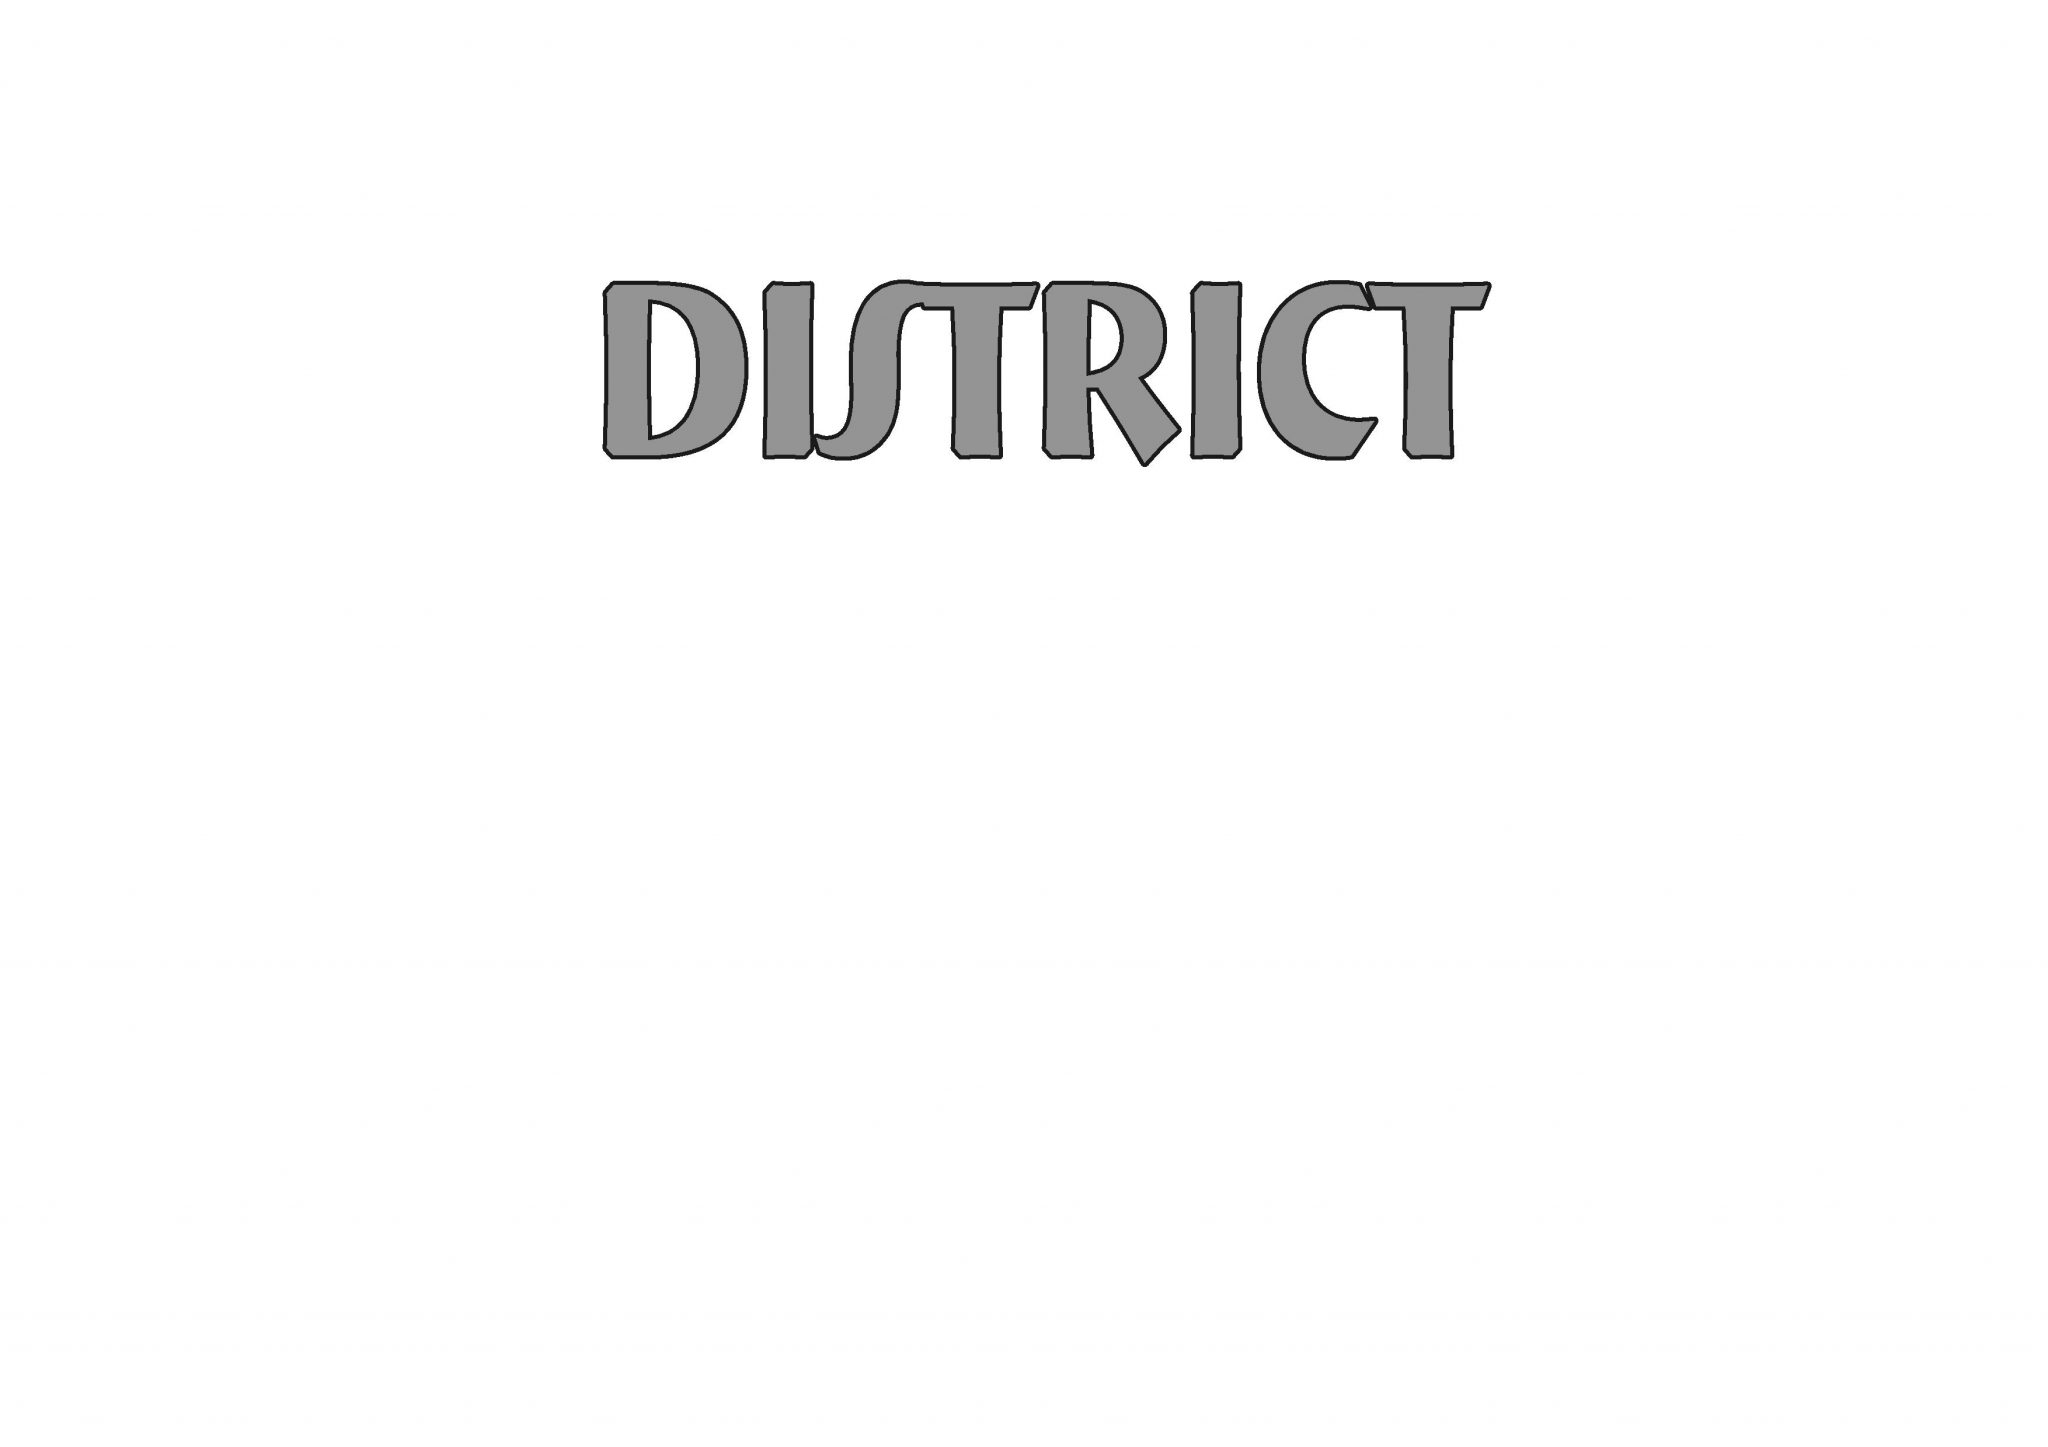 Logo_DST_Font-page-001